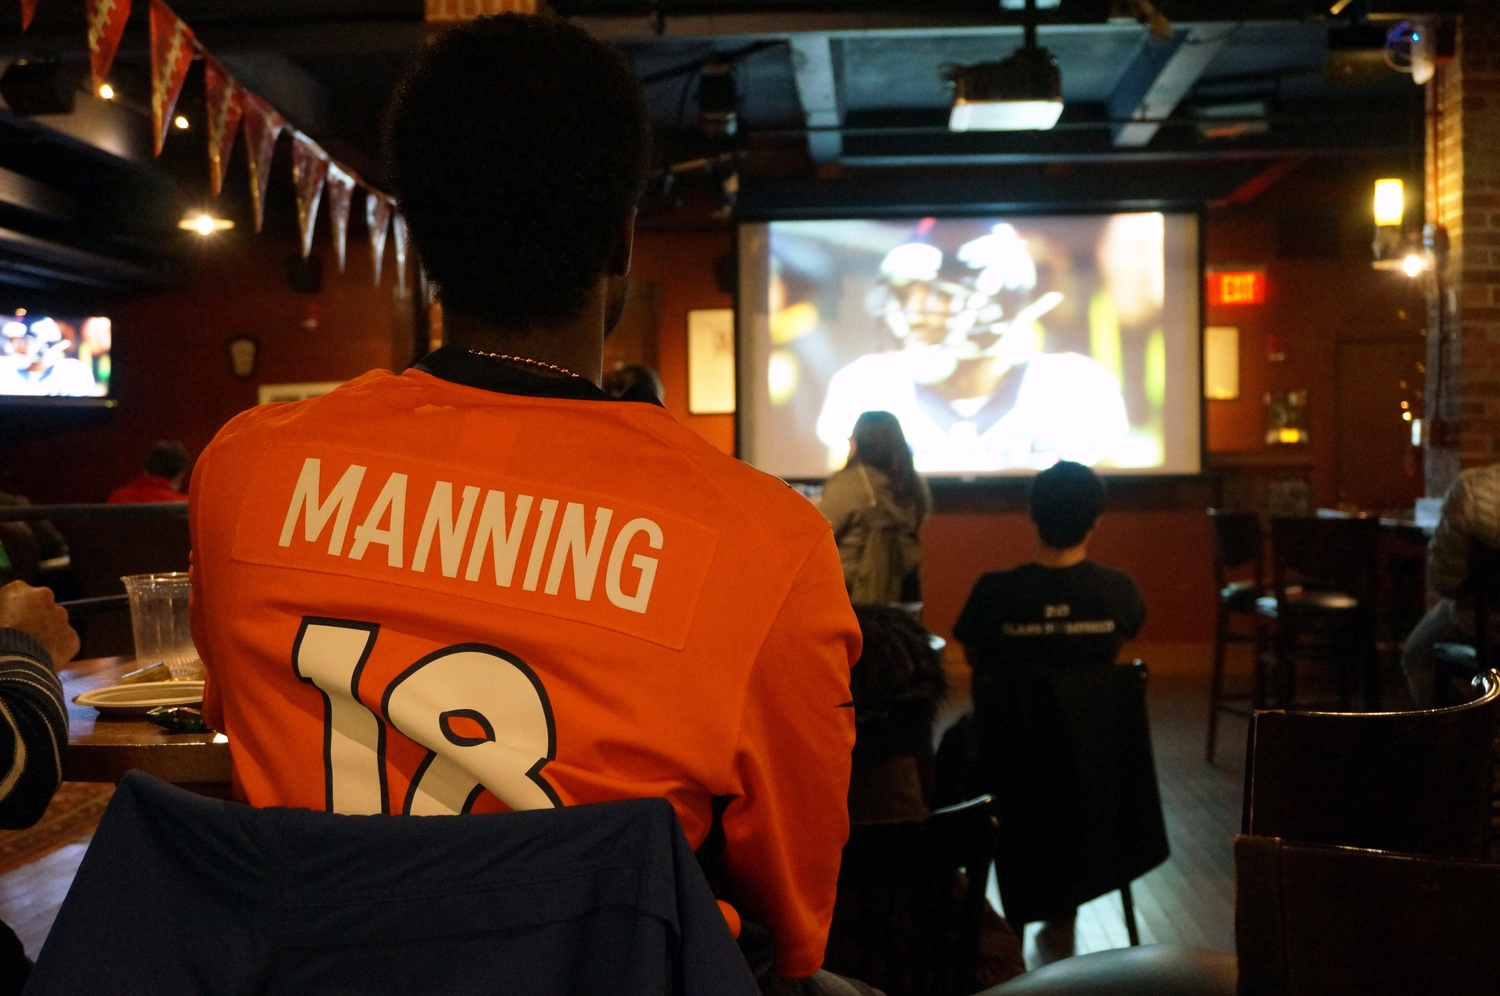 Students watch as the Denver Broncos defeat the Carolina Panthers with a final score of 24-10 during the Super Bowl on Sunday night. This watch party in Cambridge Queen's Head was one of many on campus.